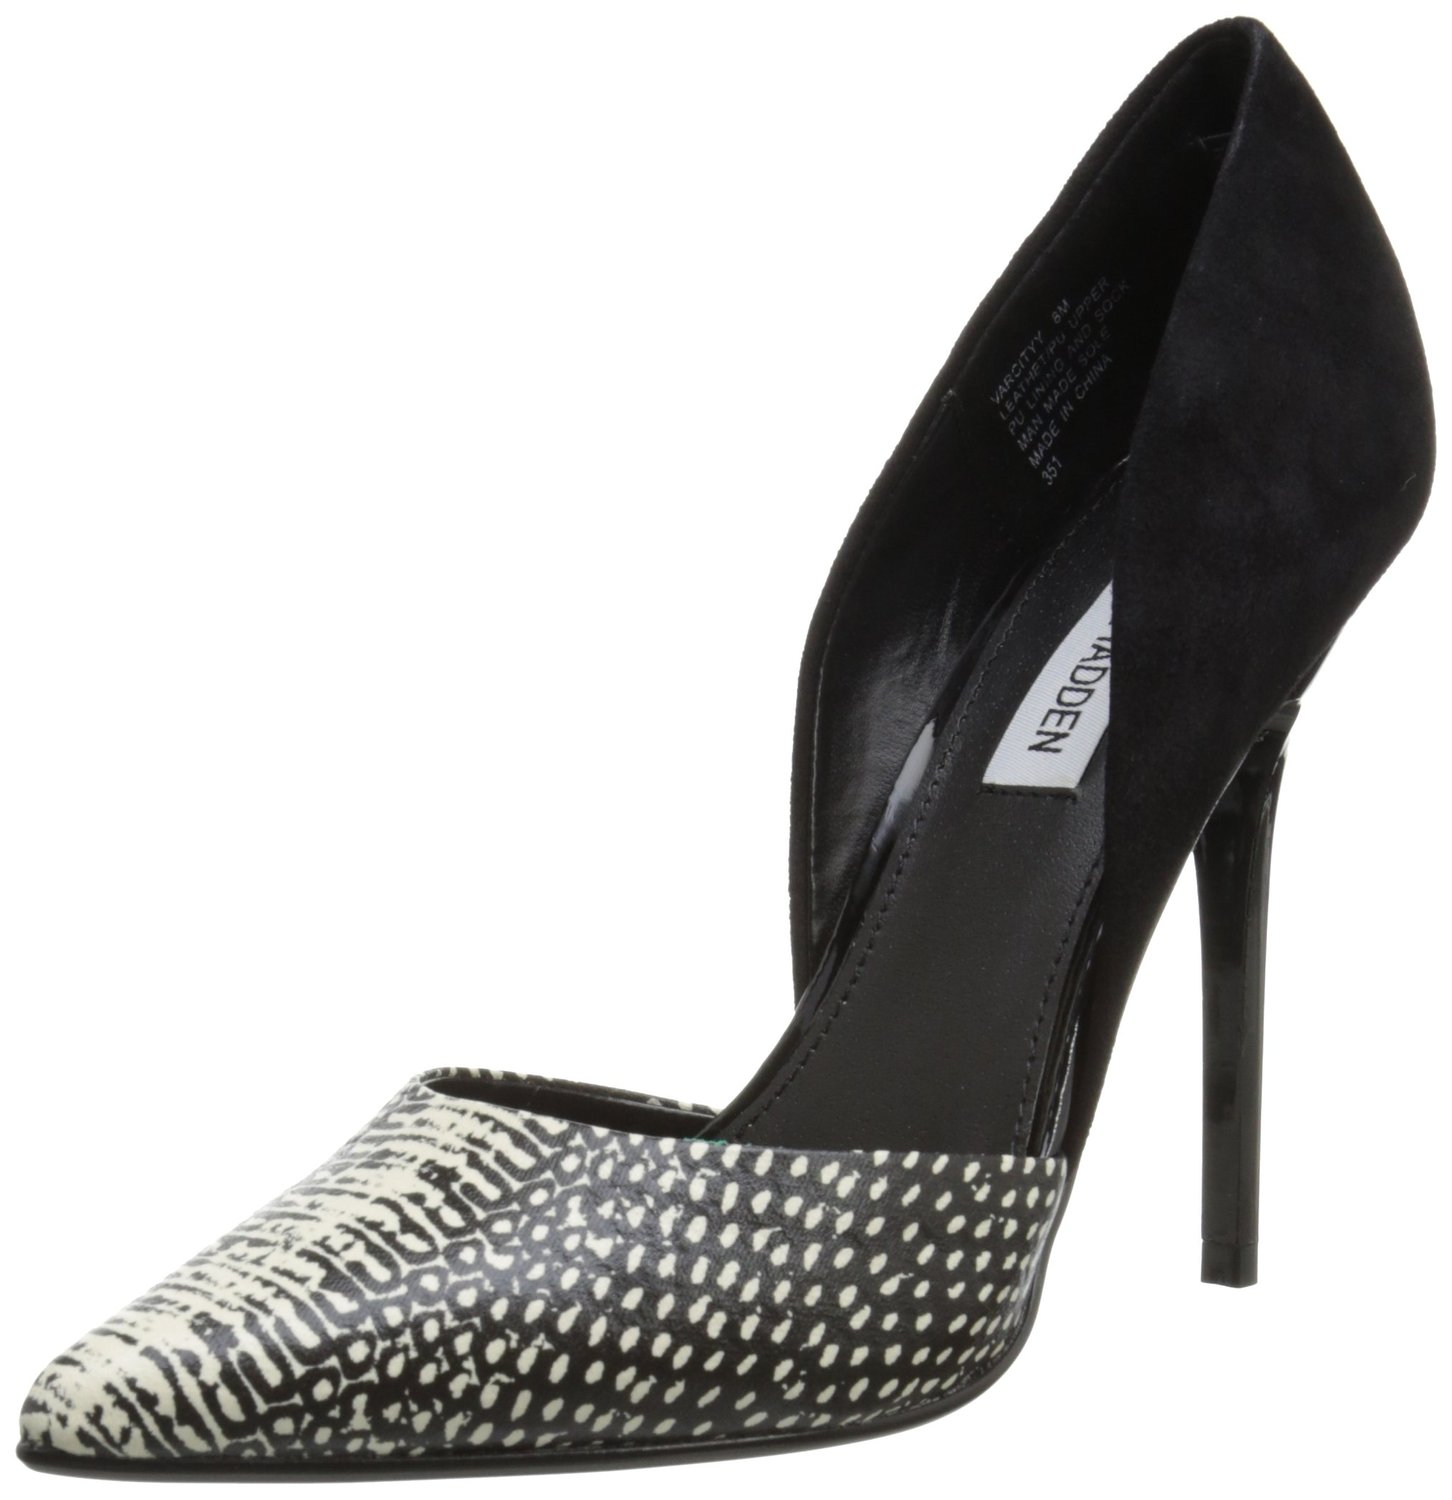 aae868a7d96 Steve Madden Varcityy Dress Pump BlackWhite